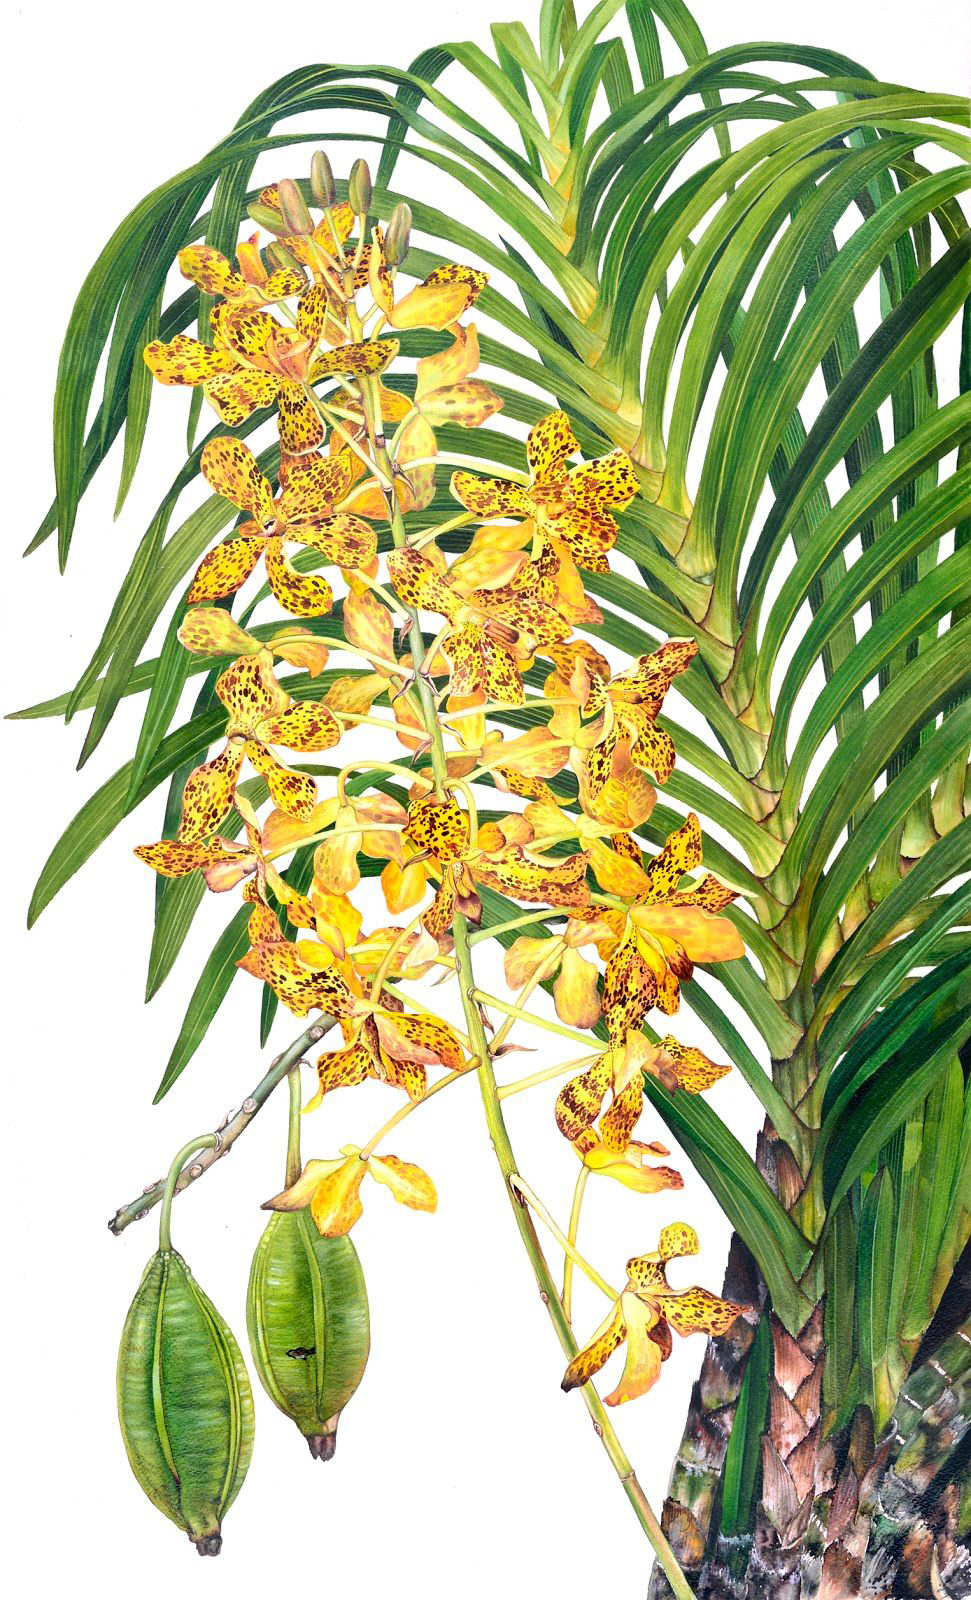 Grammatophyllum speciosum,  watercolor on paper, ©Karyono Apic 2015